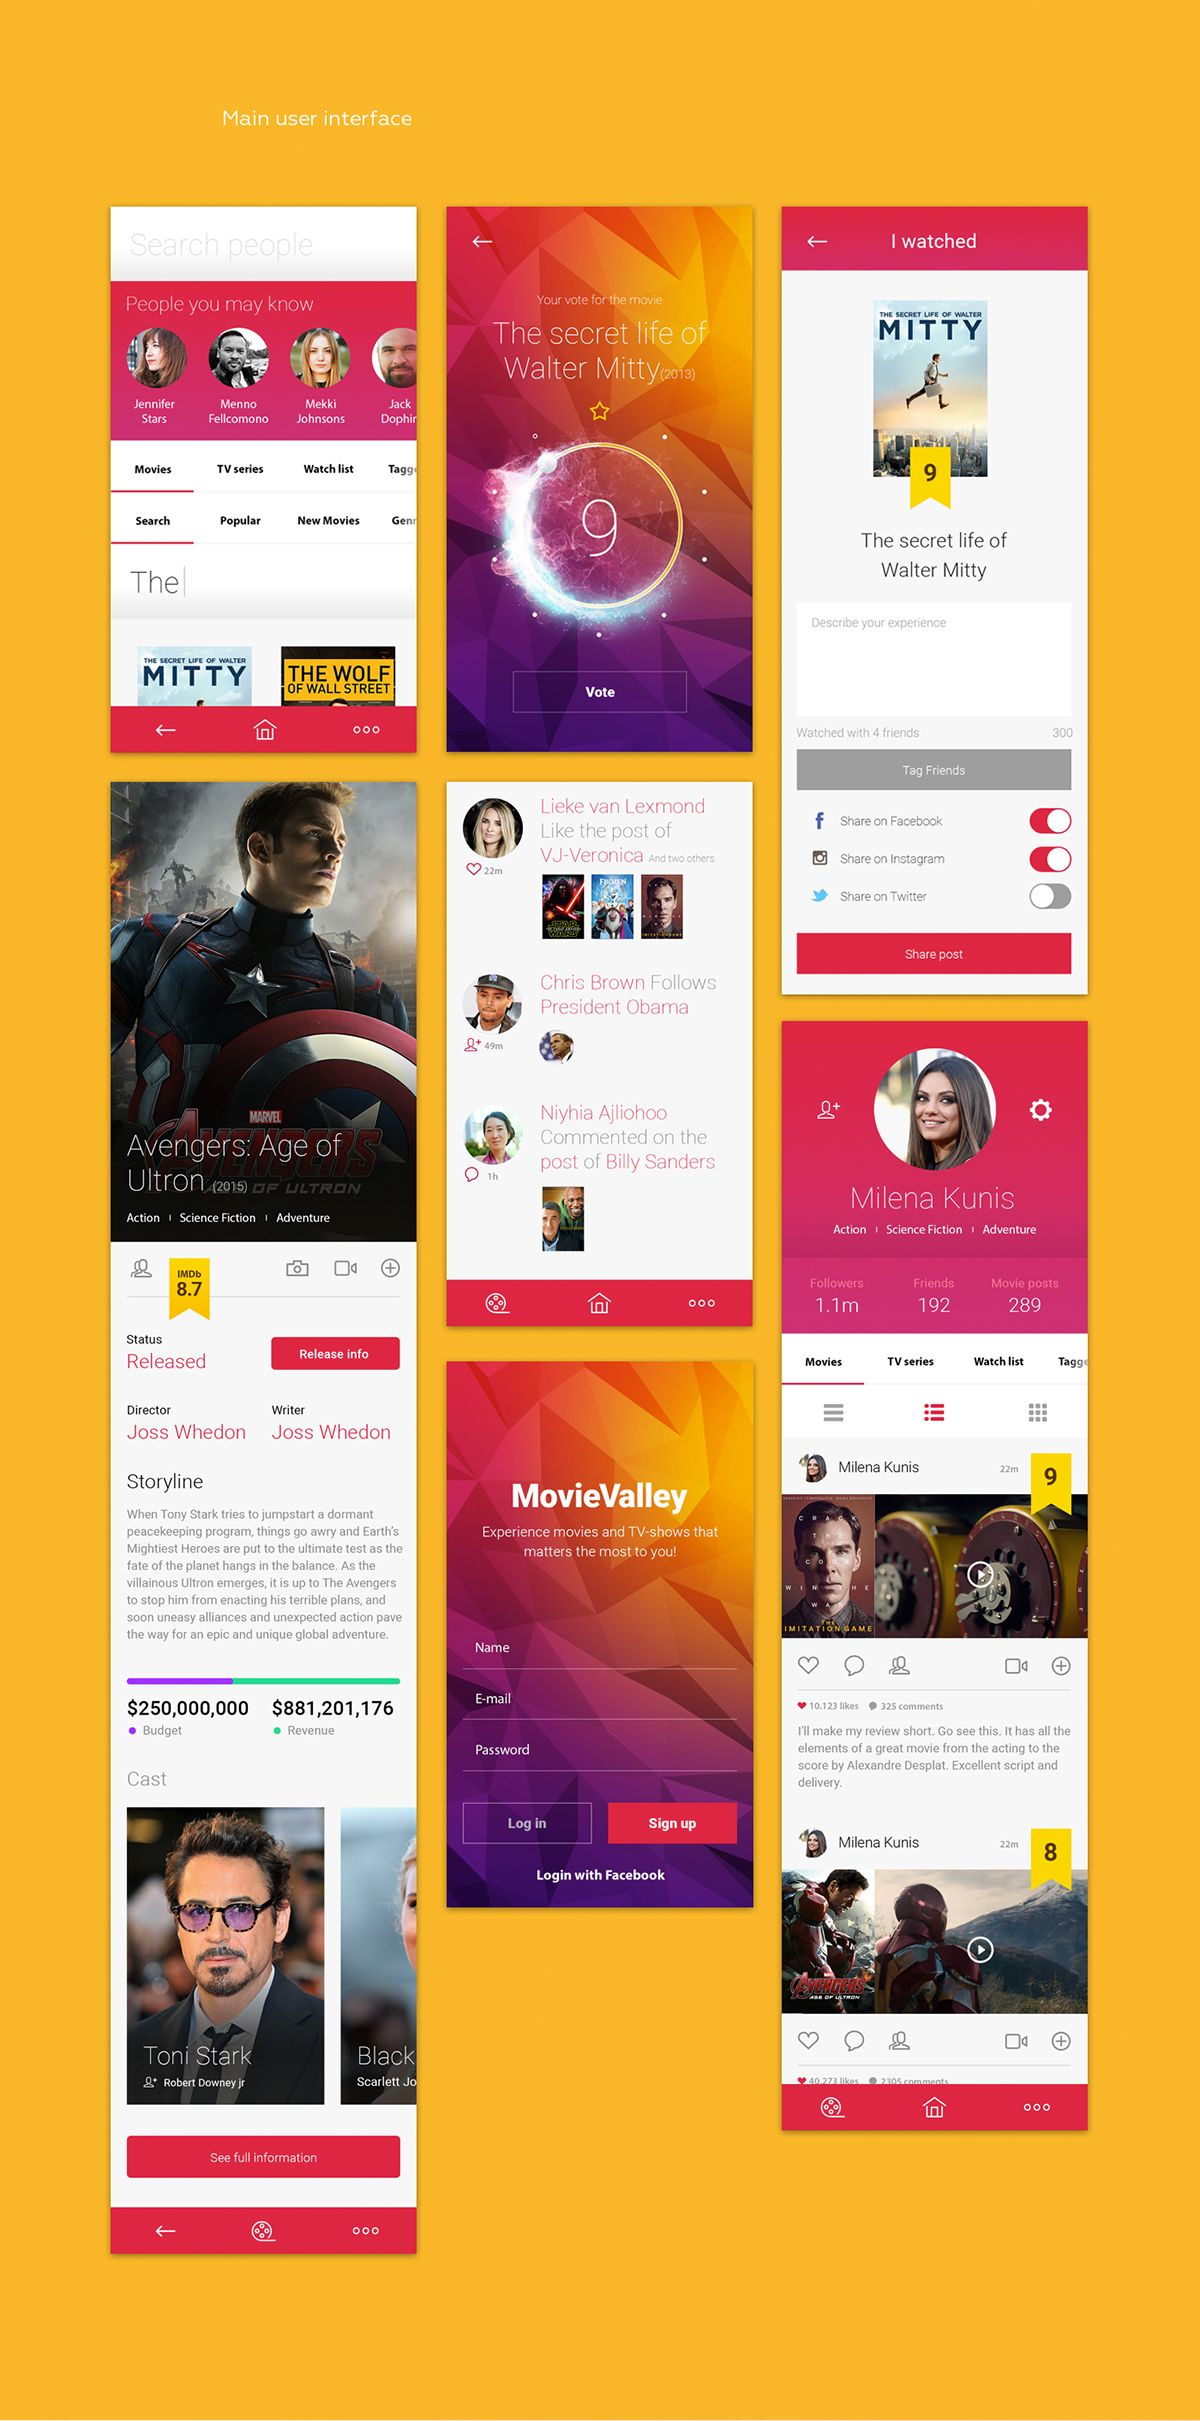 Experience Movies And Tv Series That Matter On App Design Served Android App Design App Design Layout App Design